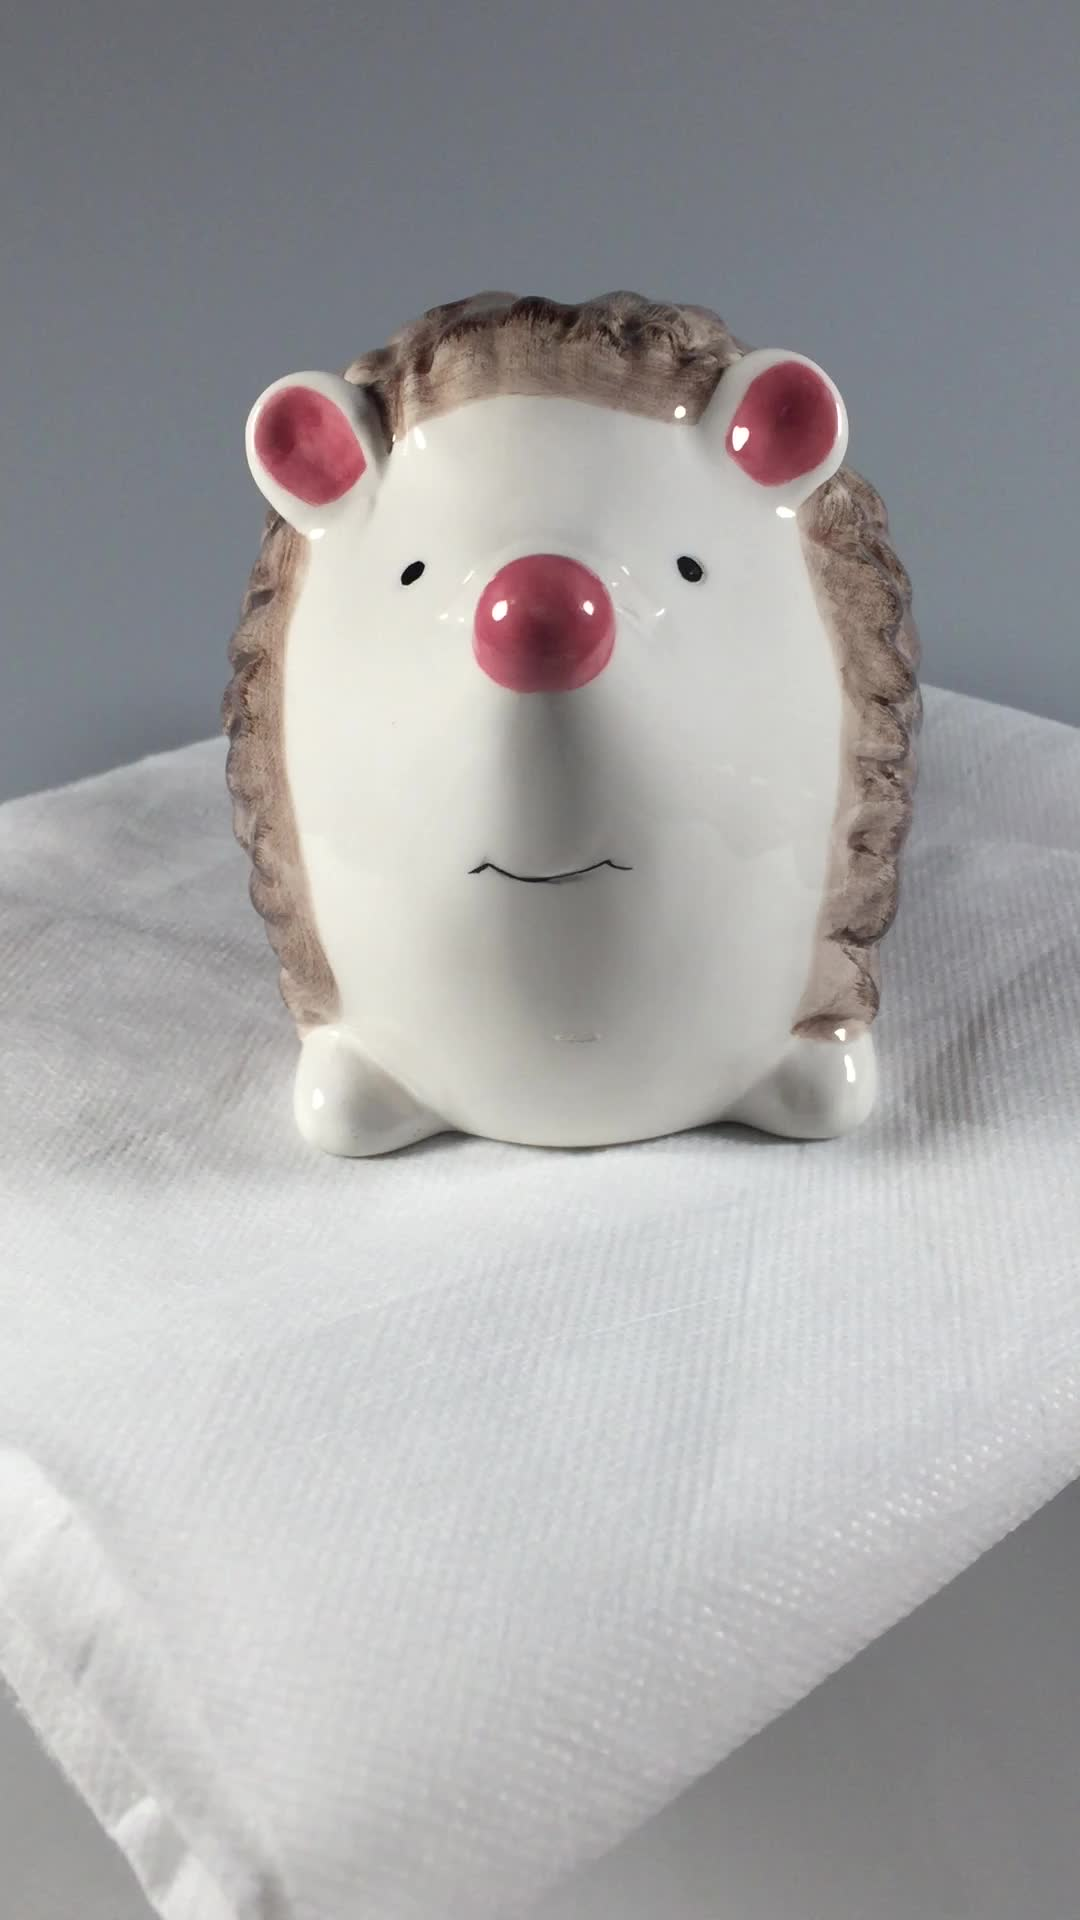 Animal Coin Banks Hot Sales Hedgehog Animal Shape Piggy Banks Coin Banks